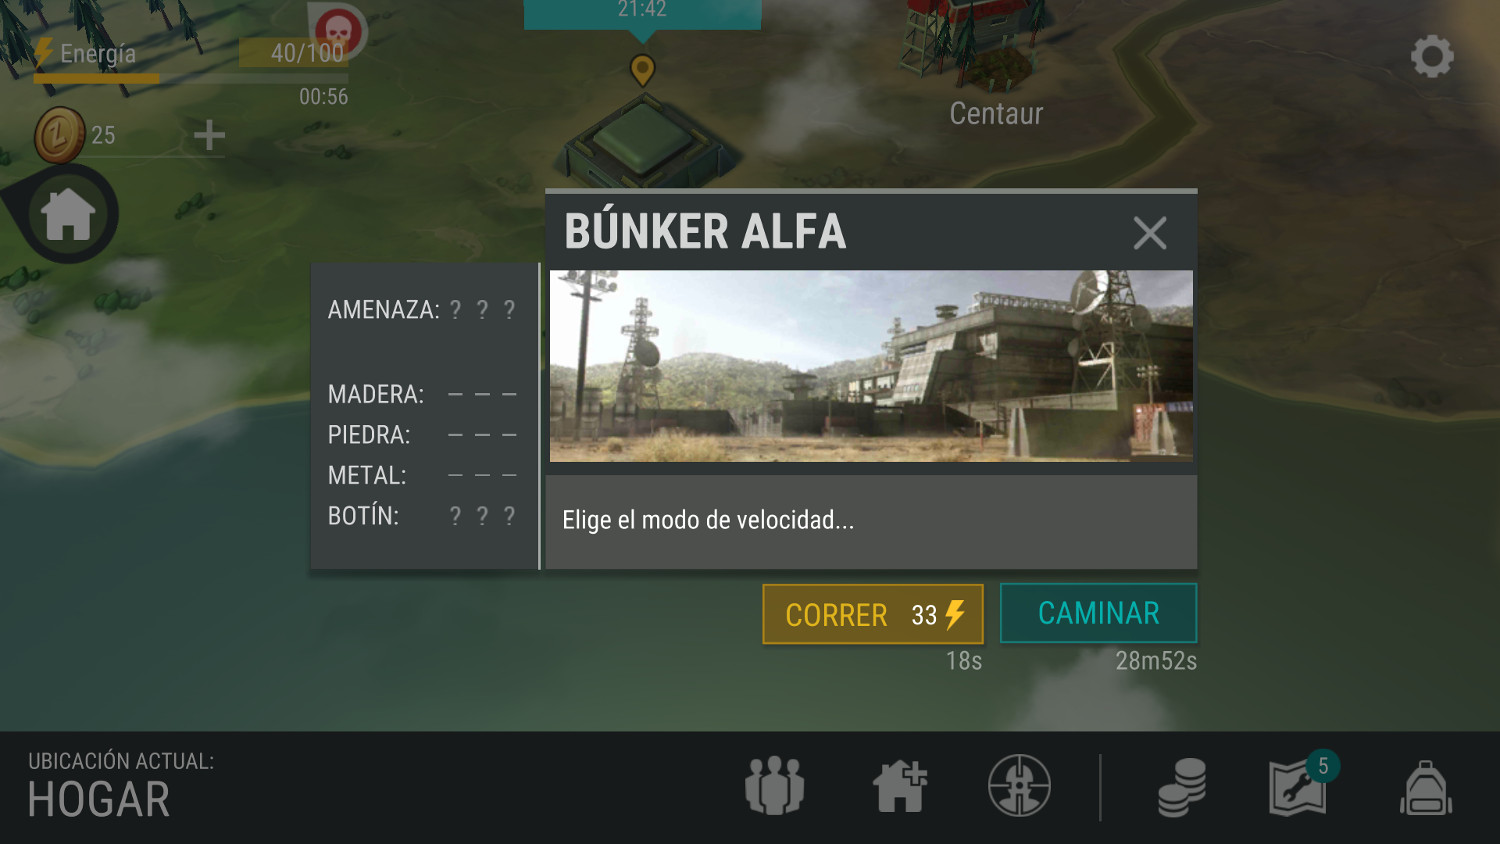 Bunker Alfa Last Day on Earth